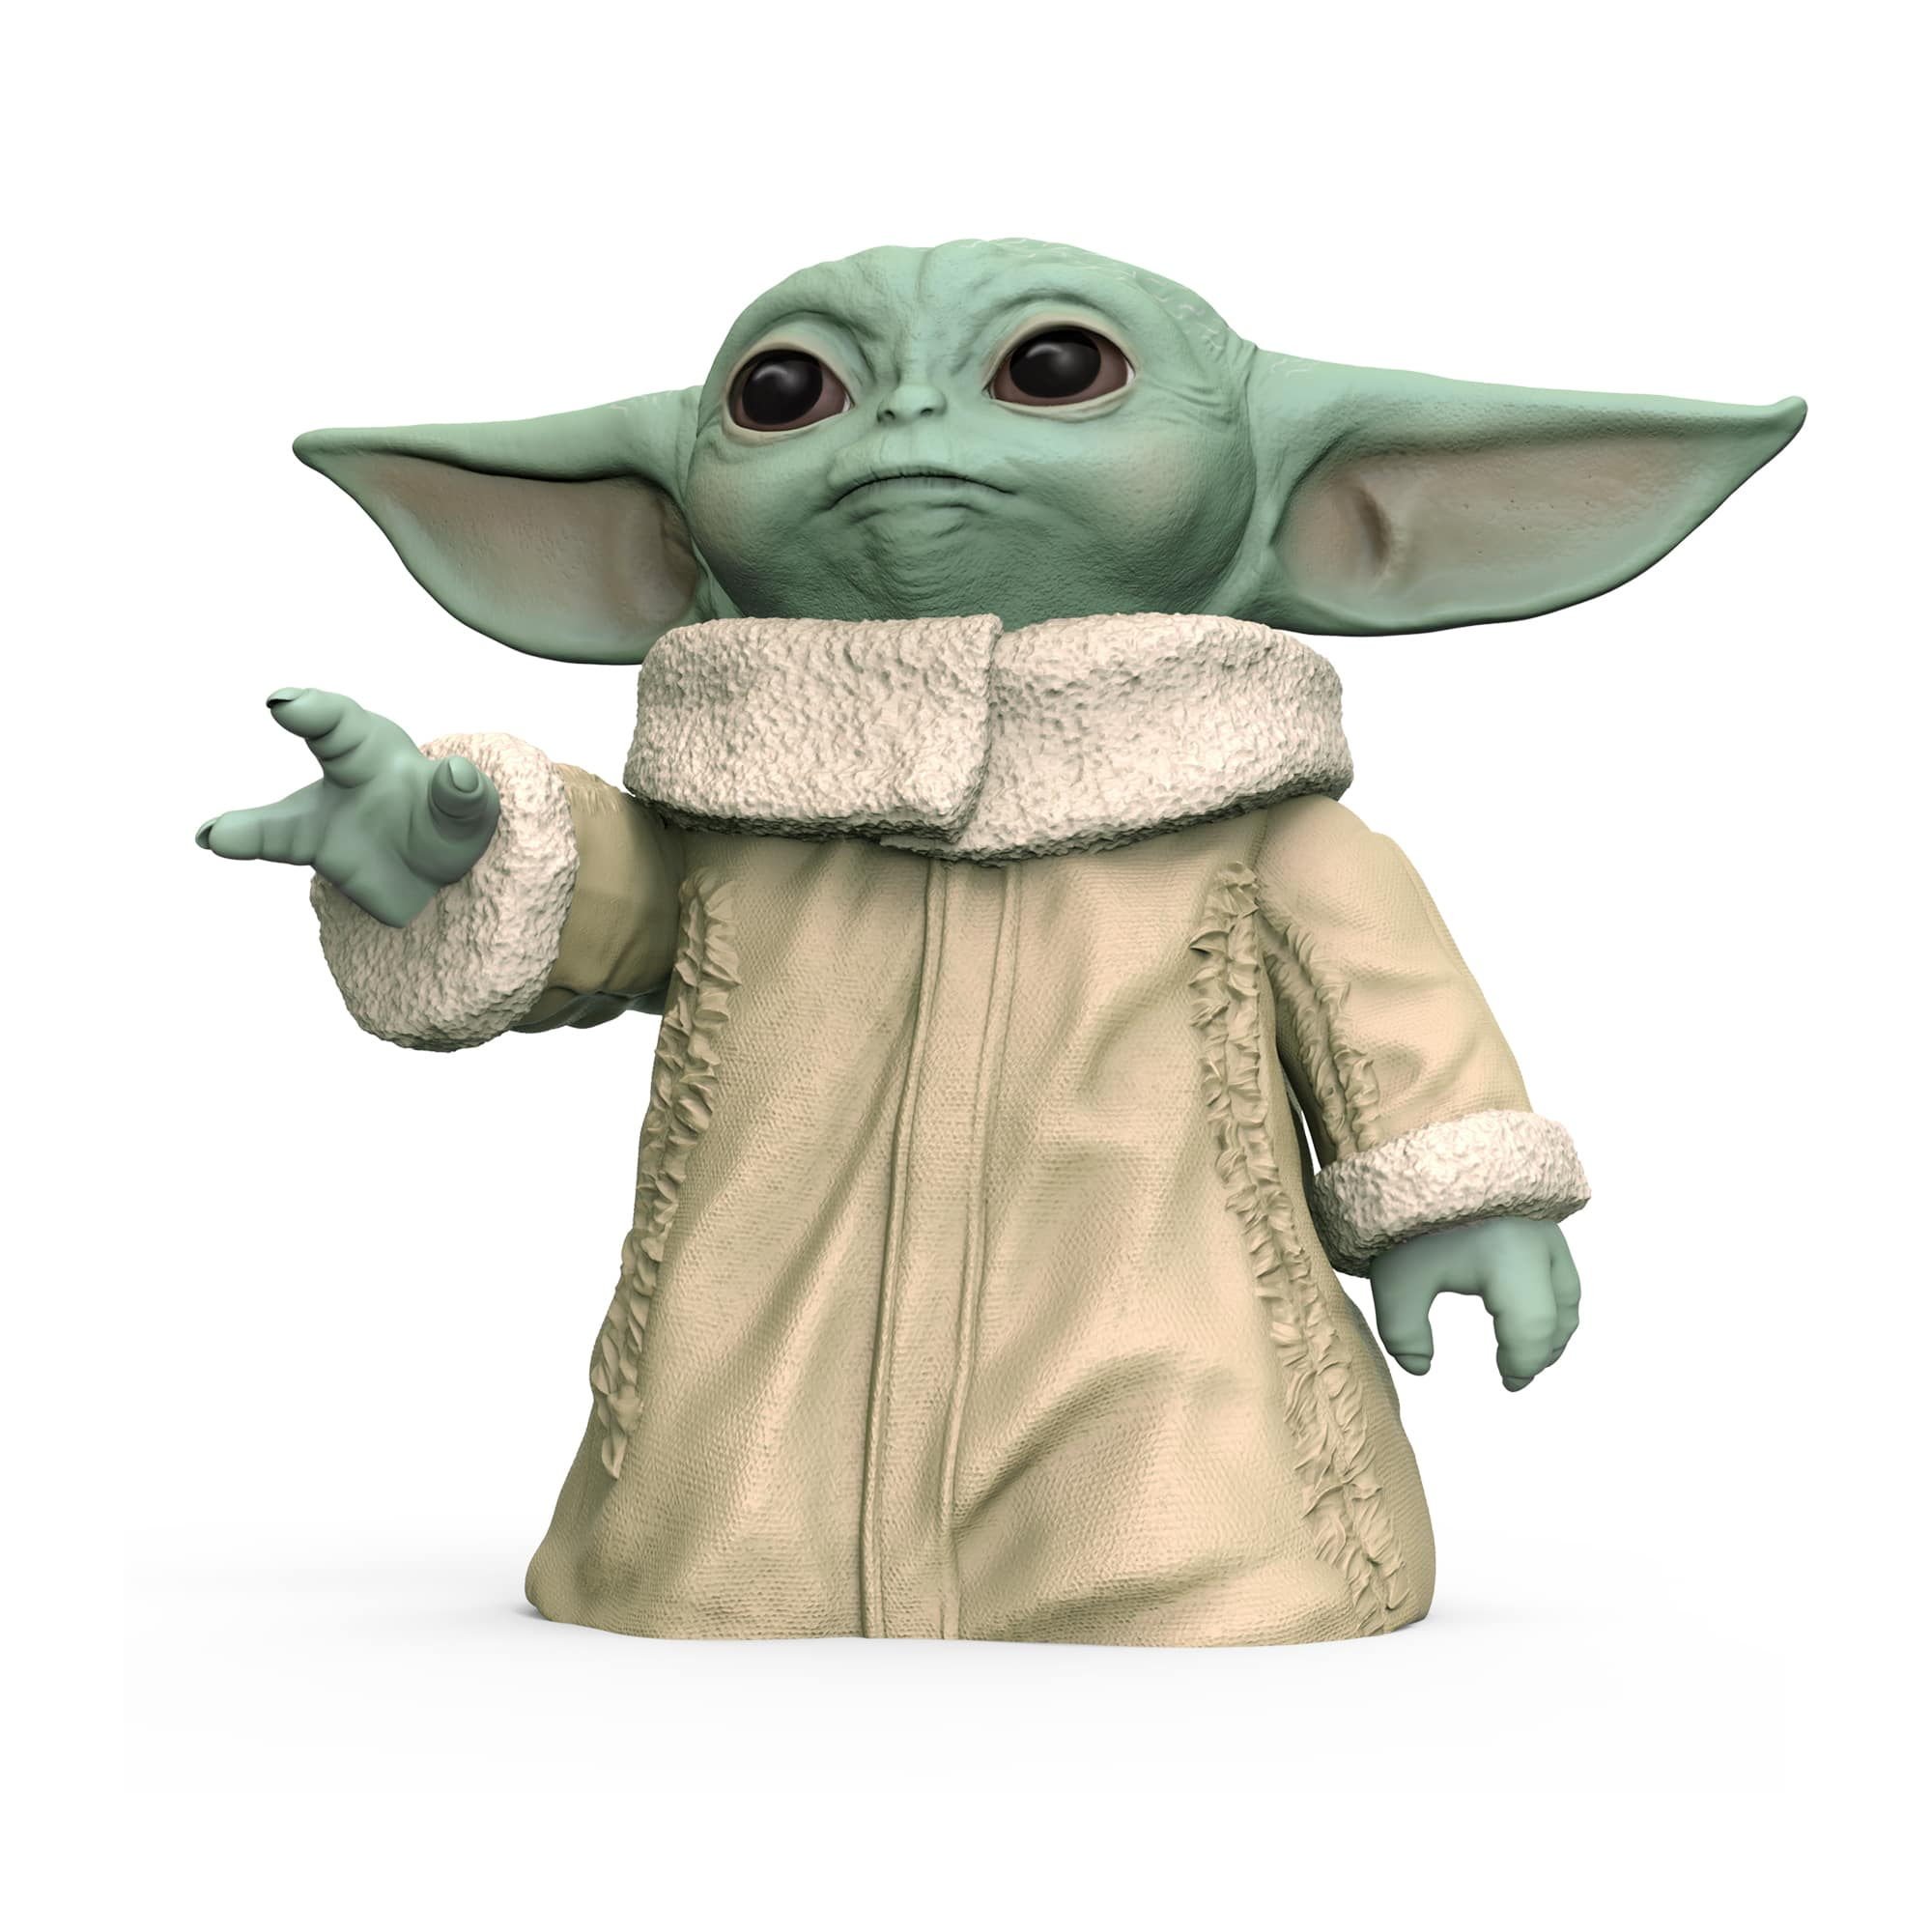 Hasbro's first Baby Yoda toys are here and they're freaking adorable 22